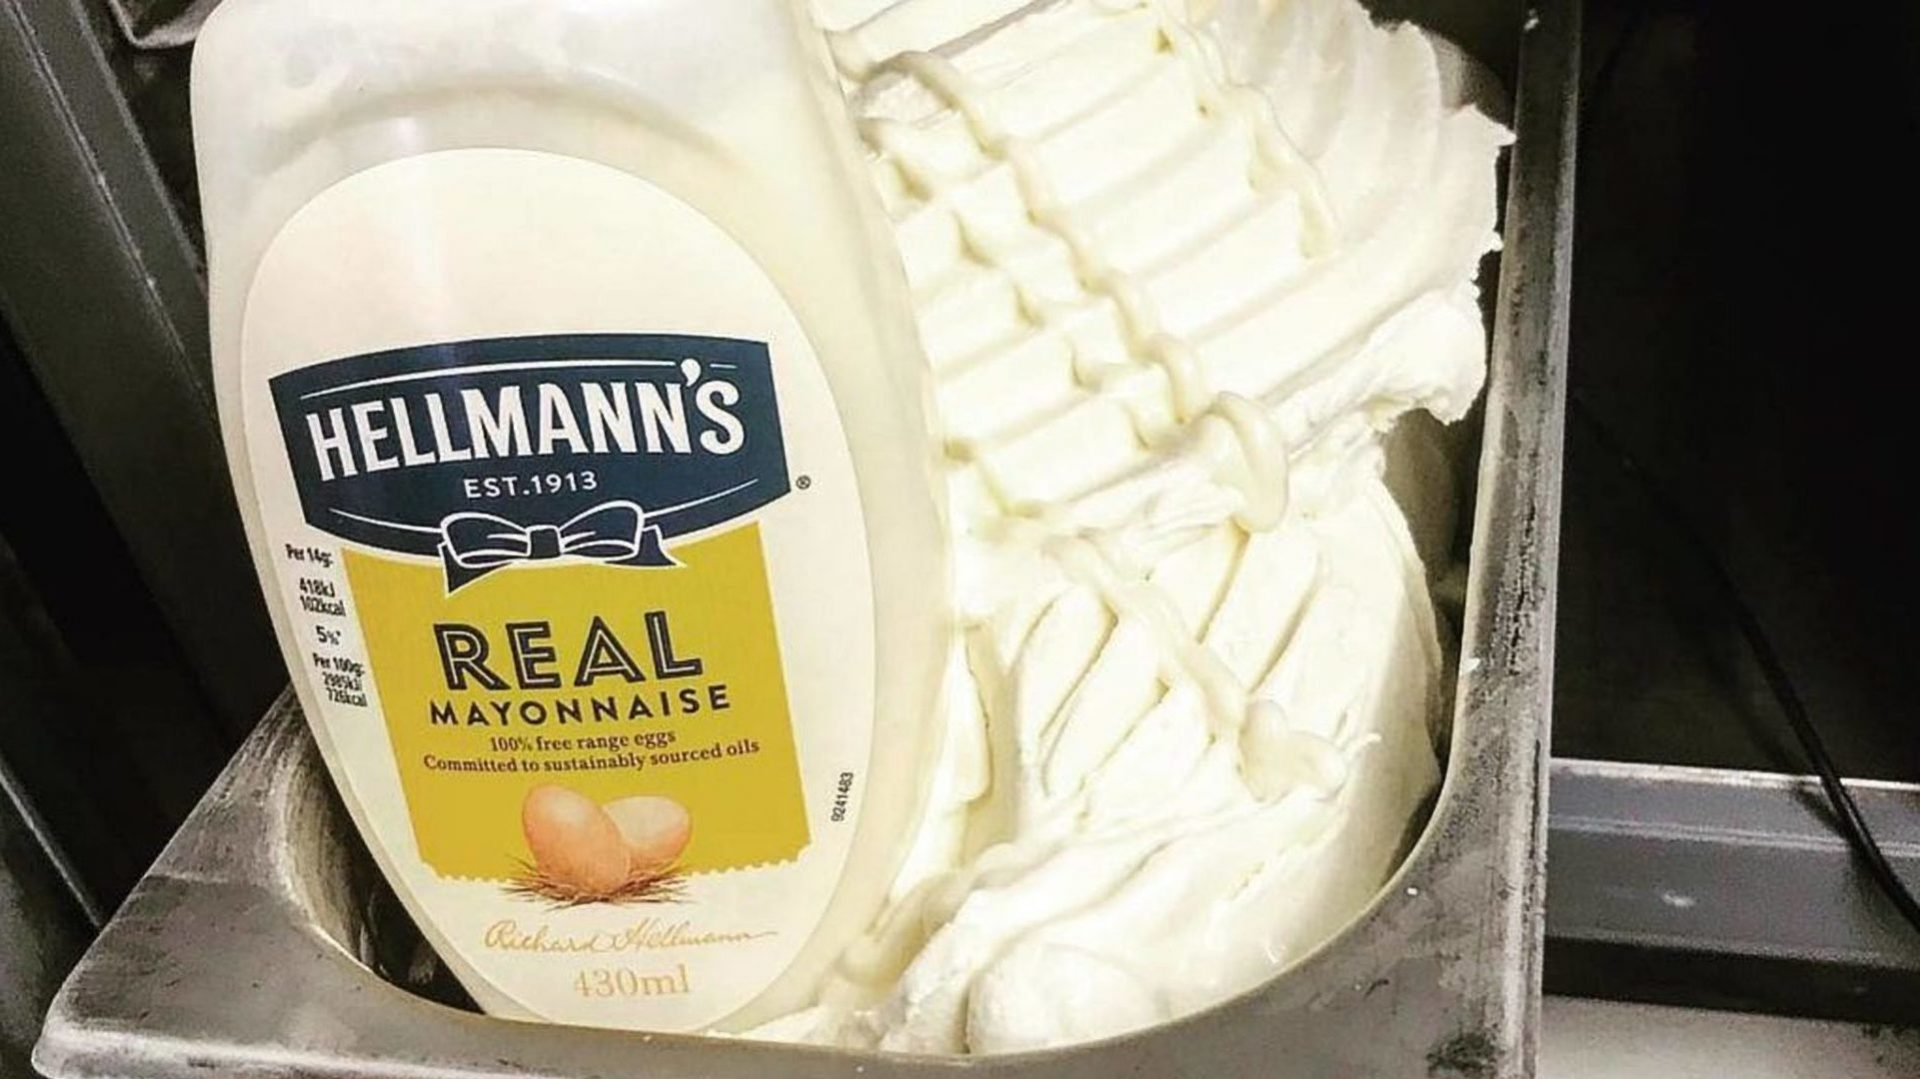 The Hellmann's Mayonnaise ice cream.